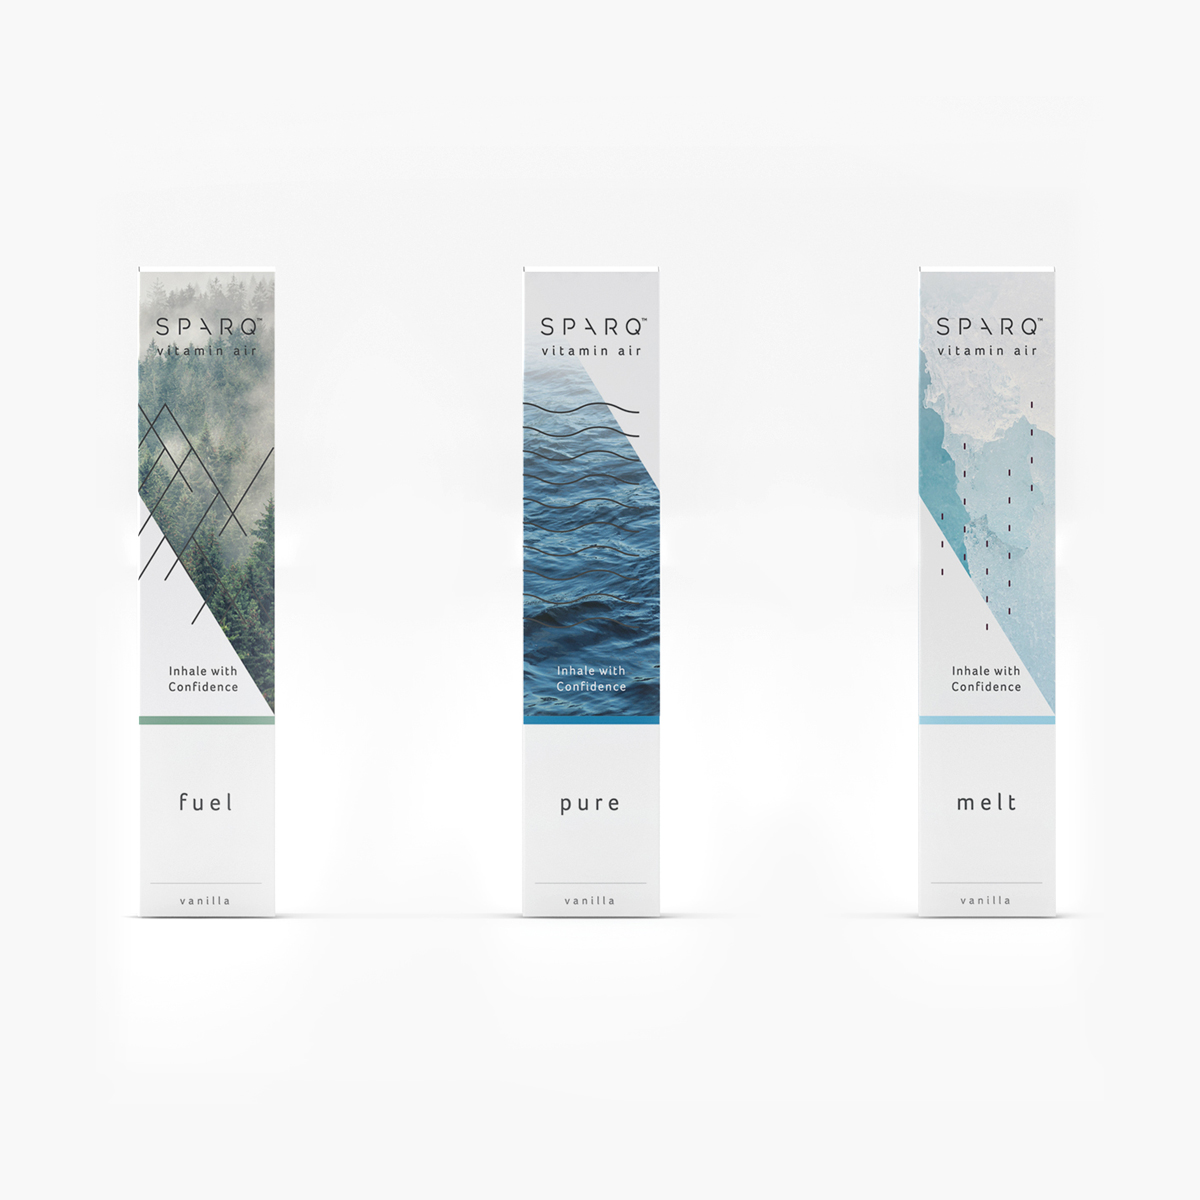 World's First Eco-Friendly Vitamin Inhalation Device / World Brand and Packaging Design Society